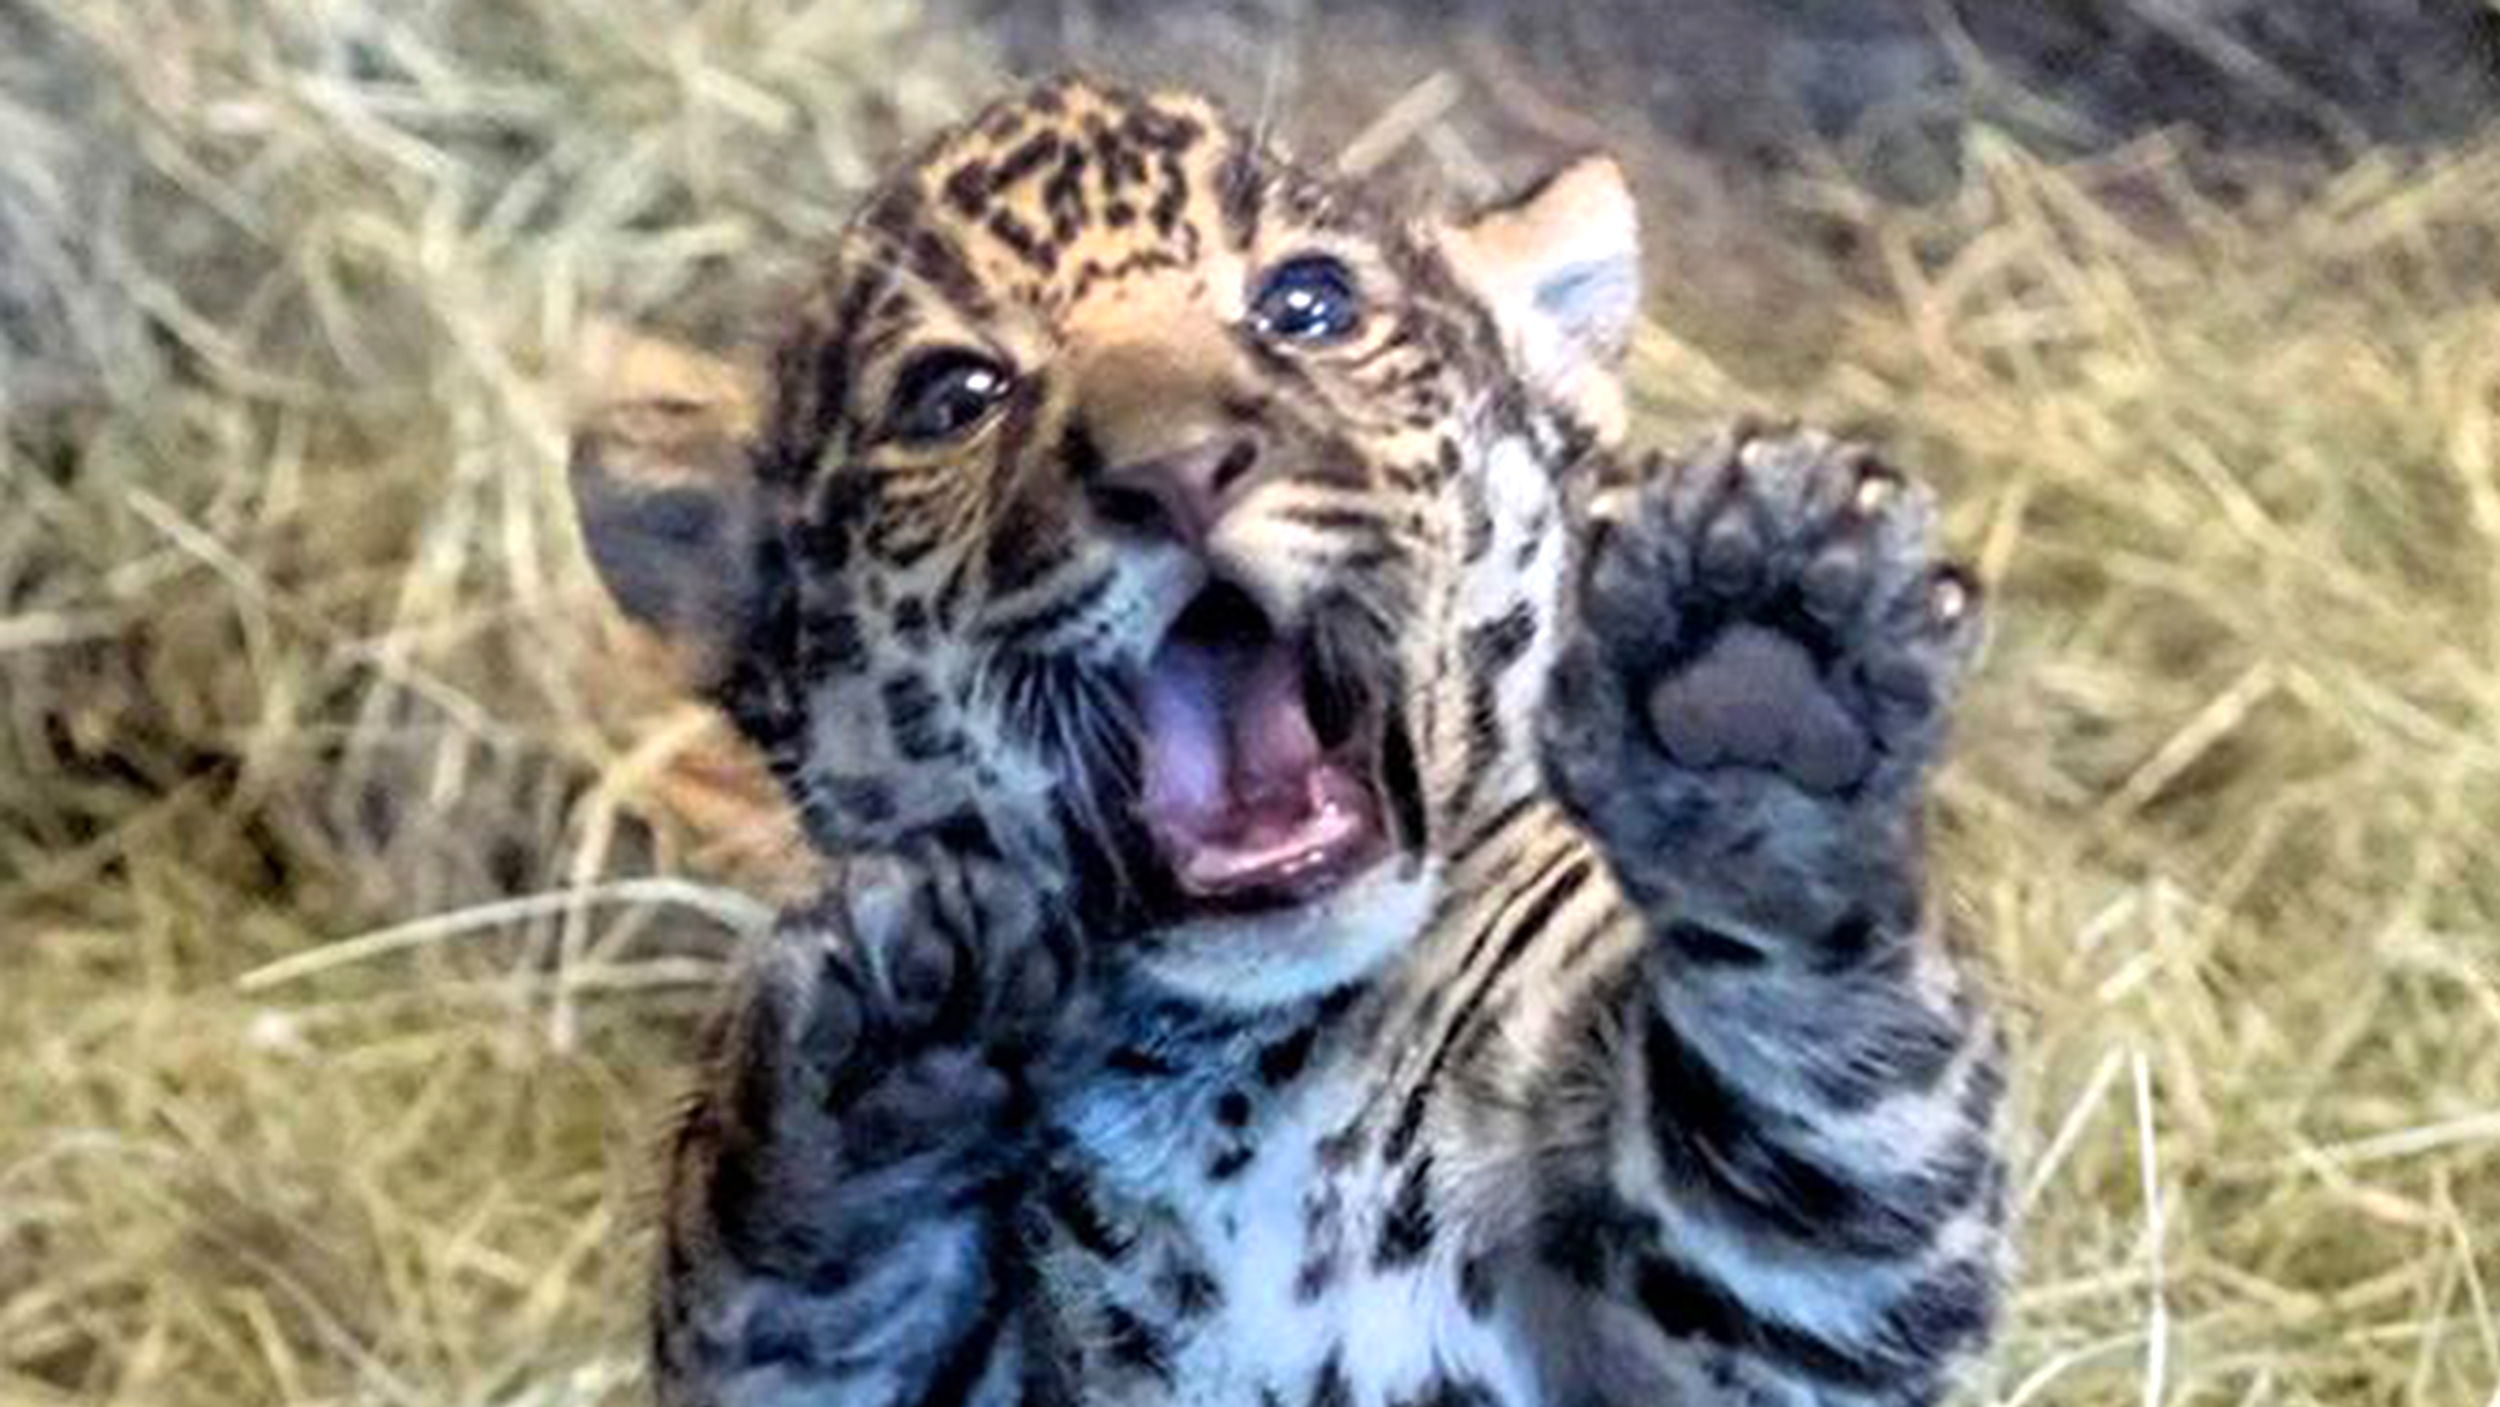 San Diego Zoo's Playful Baby Jaguar Will Melt Your Heart